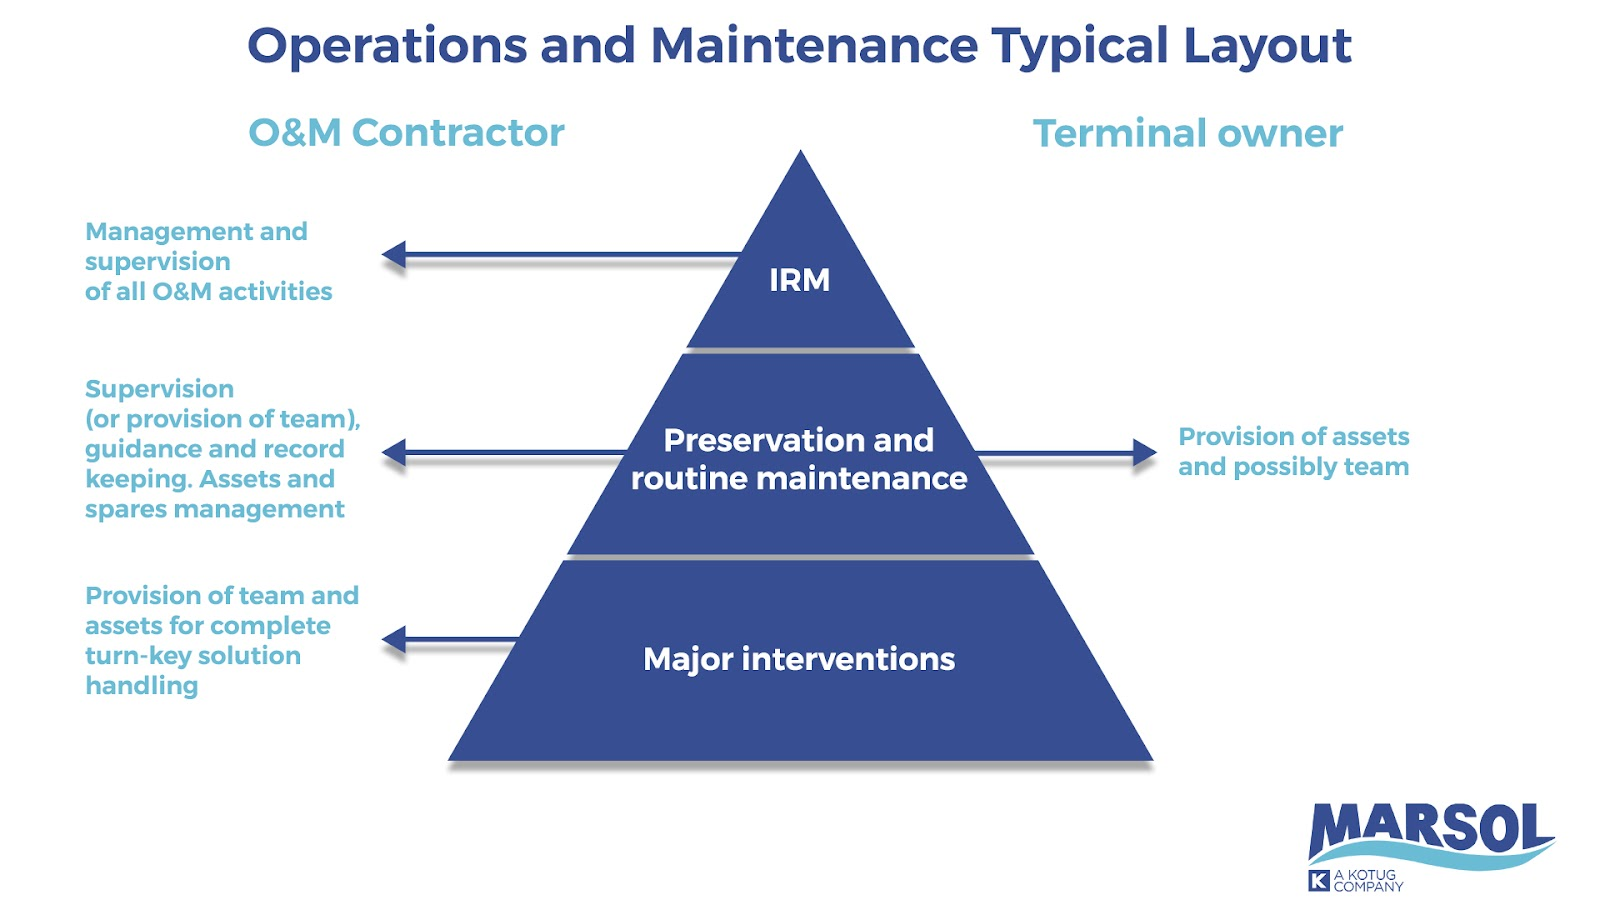 Offshore terminal risk management within the operations and maintenance layout